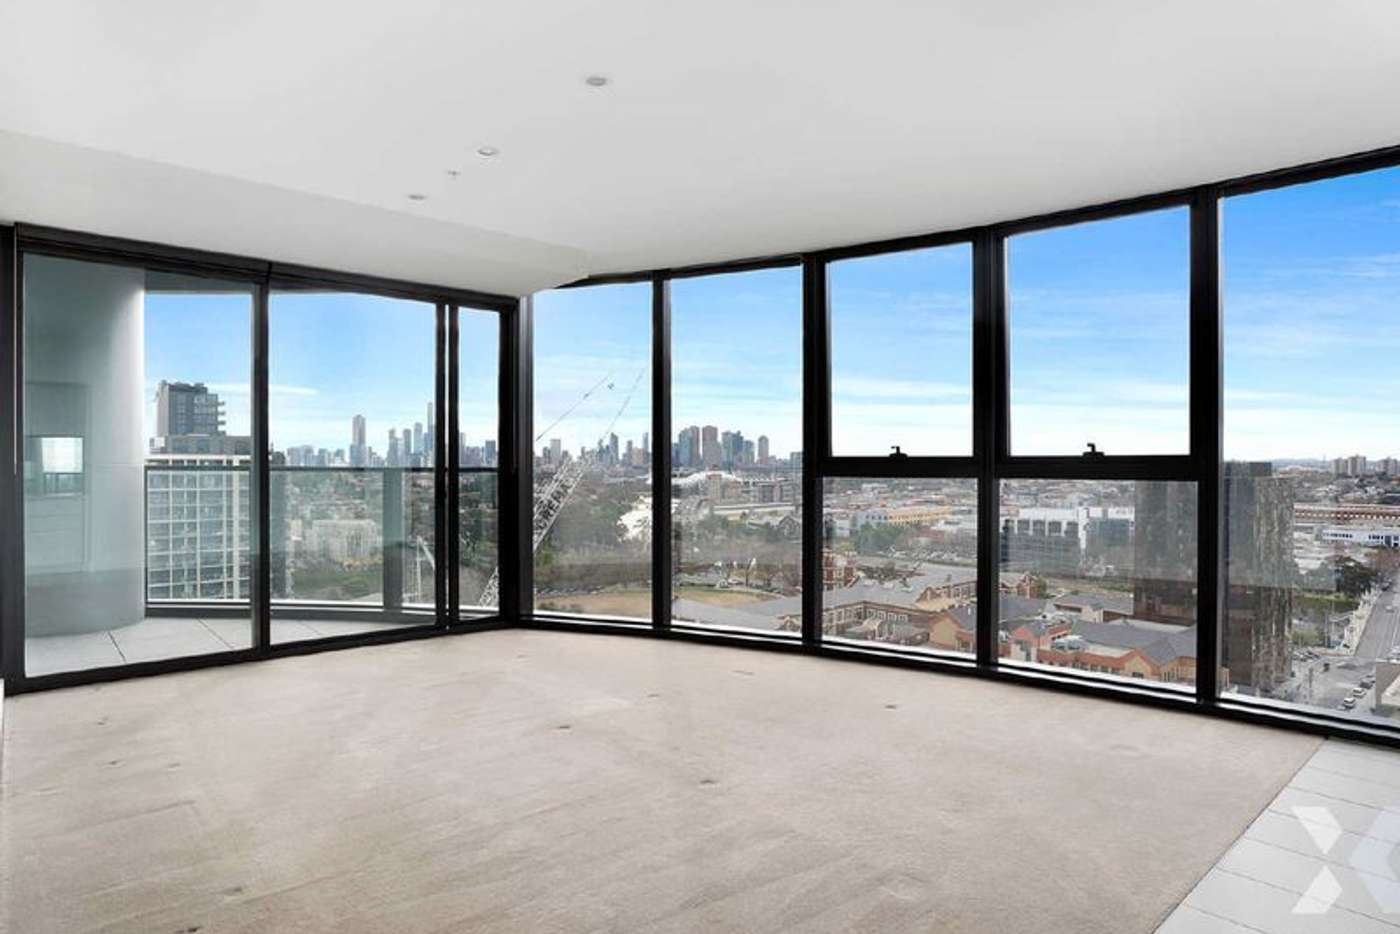 Main view of Homely other listing, 1306/35 Malcolm Street, South Yarra VIC 3141